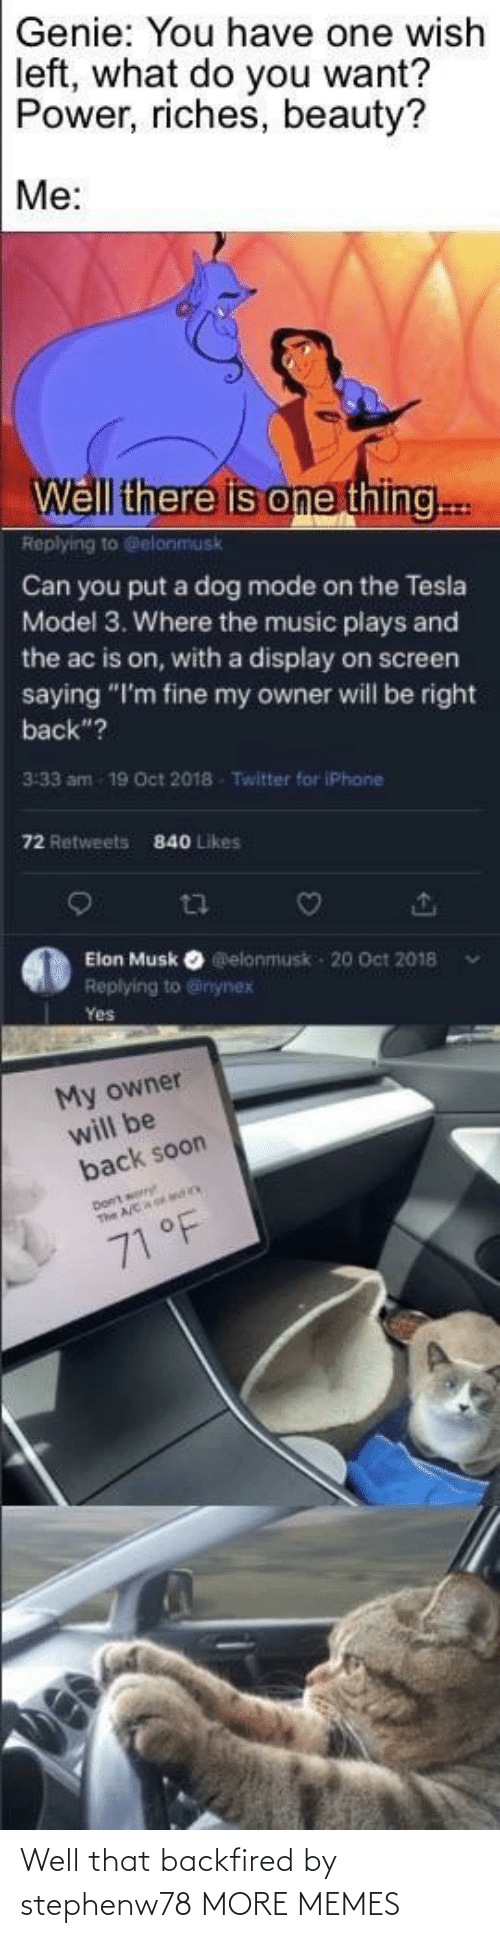 "elon musk: Genie: You have one wish  left, what do you want?  Power, riches, beauty?  Me:  Well there is one thing..  Replying to Gelonmusk  Can you put a dog mode on the Tesla  Model 3. Where the music plays and  the ac is on, with a display on screen  saying ""I'm fine my owner will be right  back""?  3:33 am  19 Oct 2018  Twitter for iPhane  72 Retweets  840 Likes  Elon Musk O elonmusk - 20 Oct 2018  Replying to @inynex  Yes  My owner  will be  back soon  71 °F Well that backfired by stephenw78 MORE MEMES"